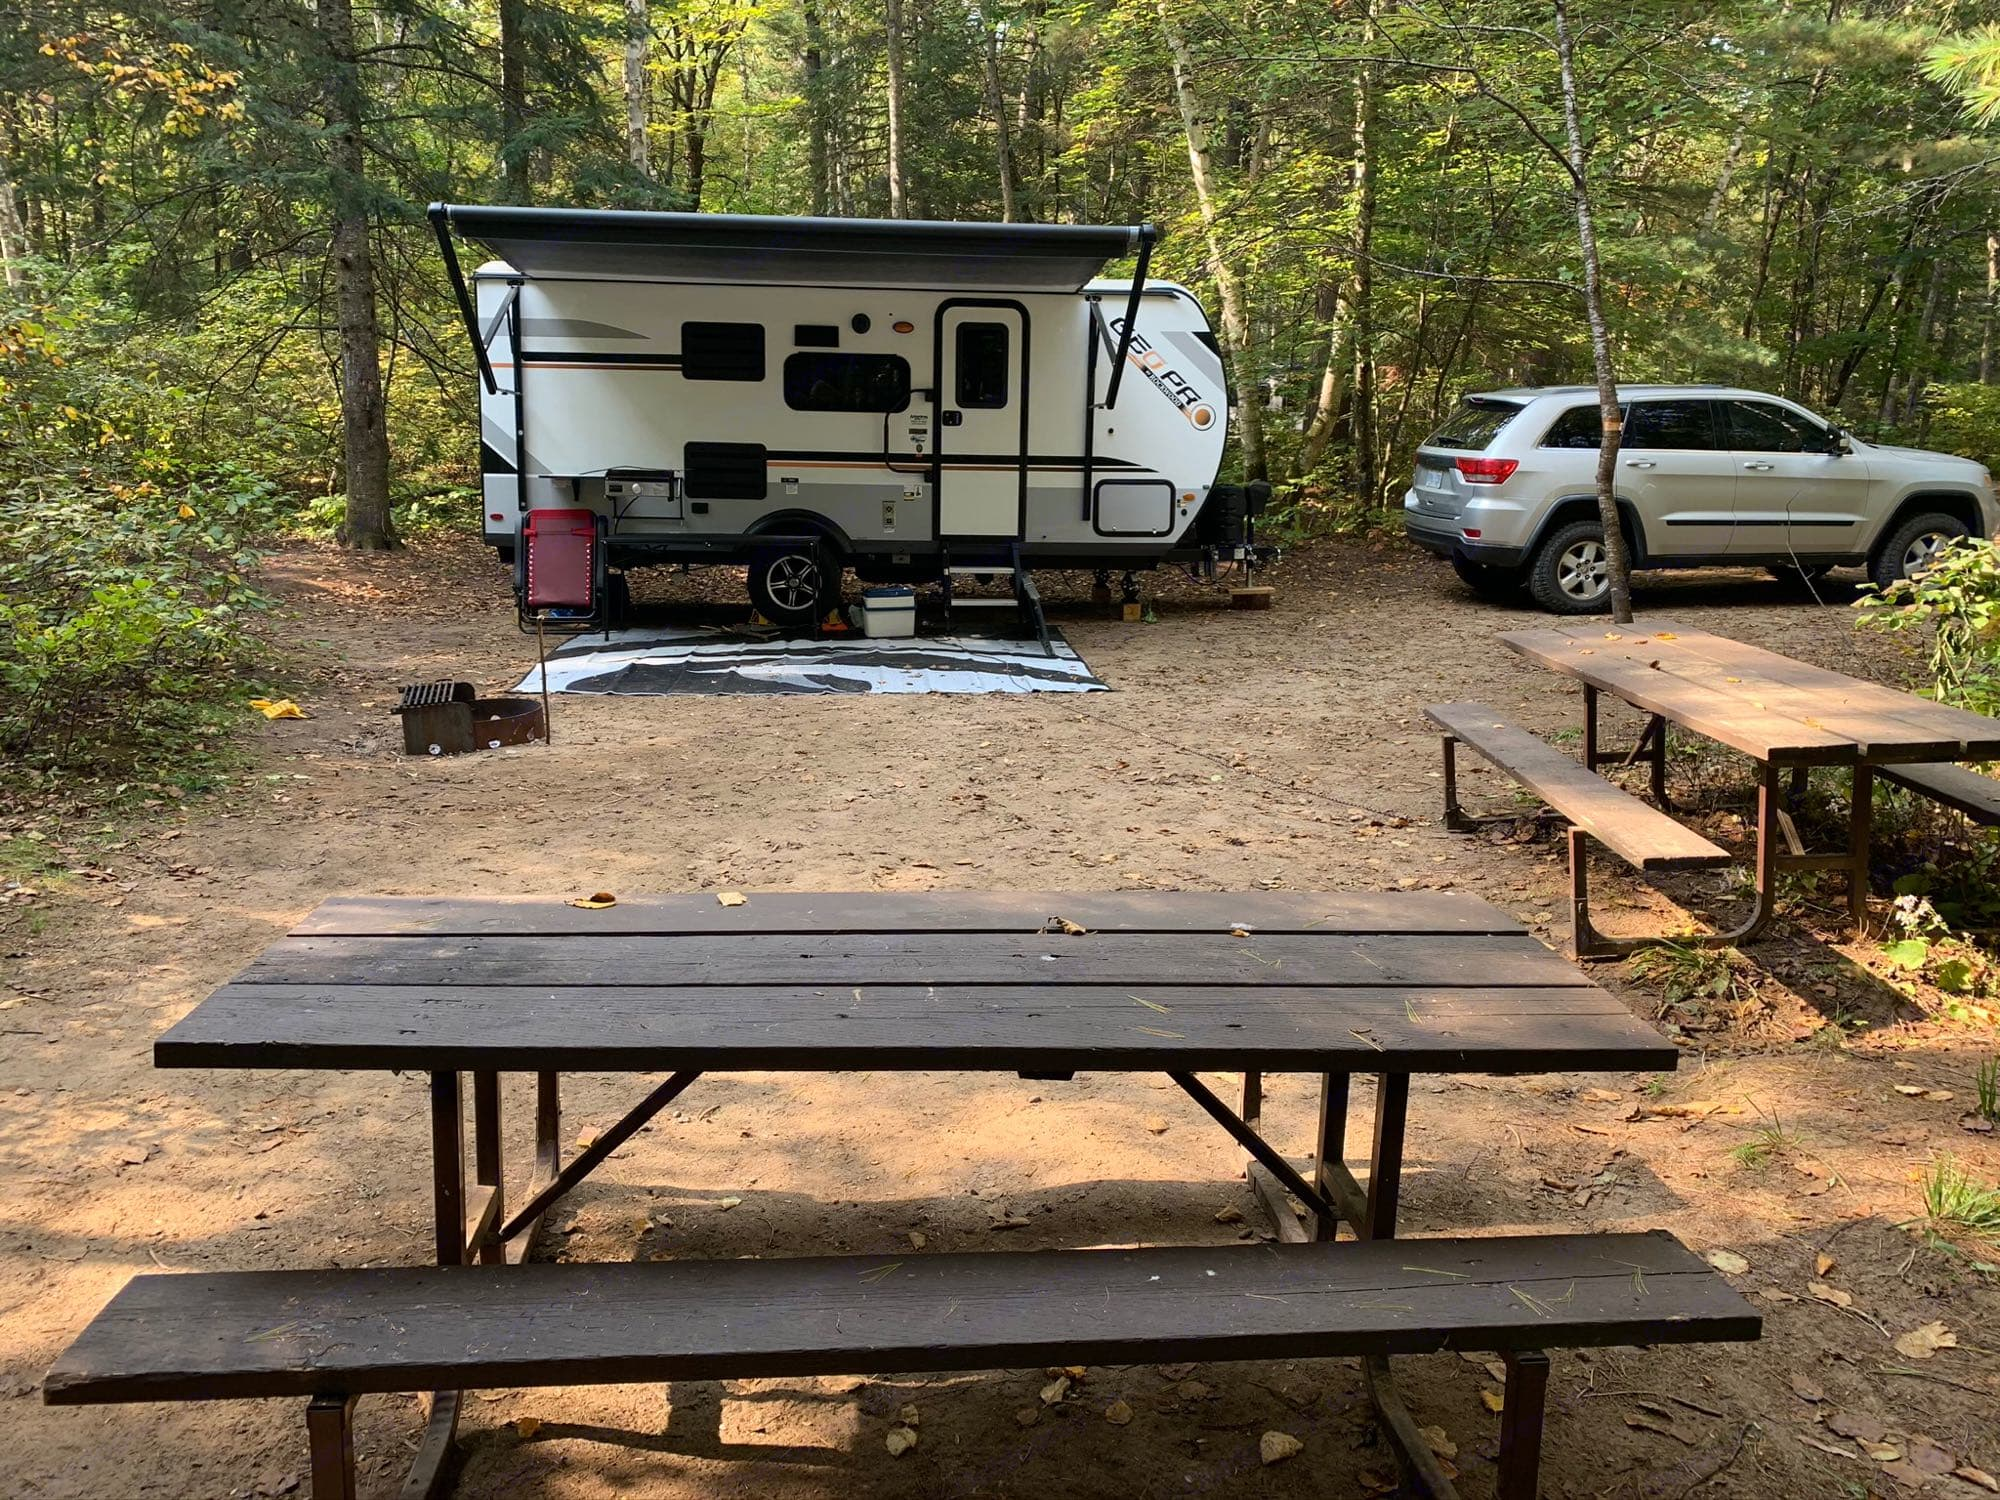 Compact trailer parked at your favorite spot, outdoor mat to keep the inside and outside tidy. Extend the awning and turn on the outdoor speaker. Forest River Rockwood 2020